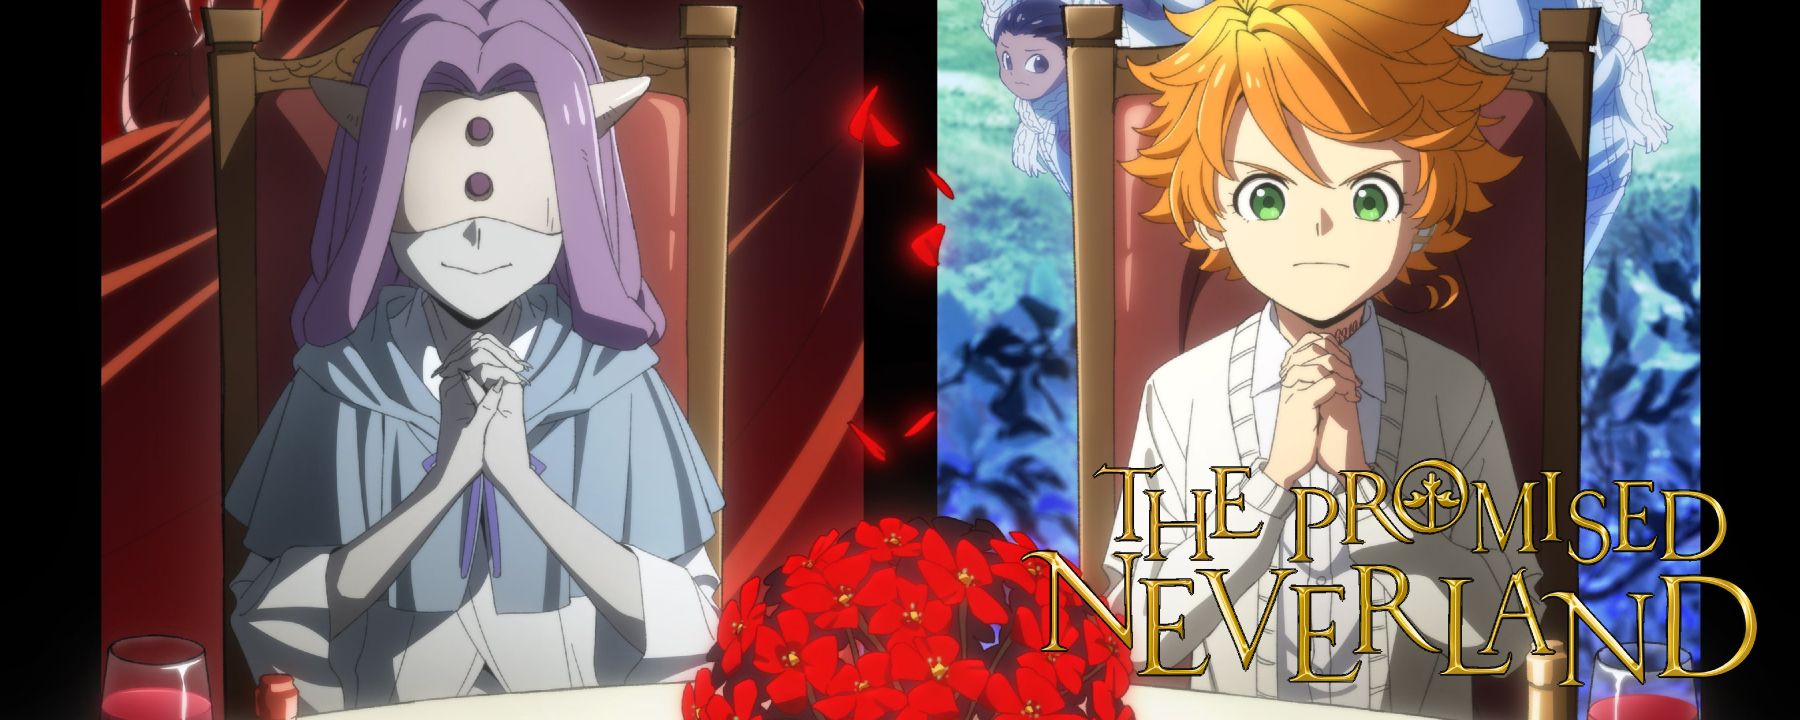 Anime Hajime Review: The Promised Neverland Season 2